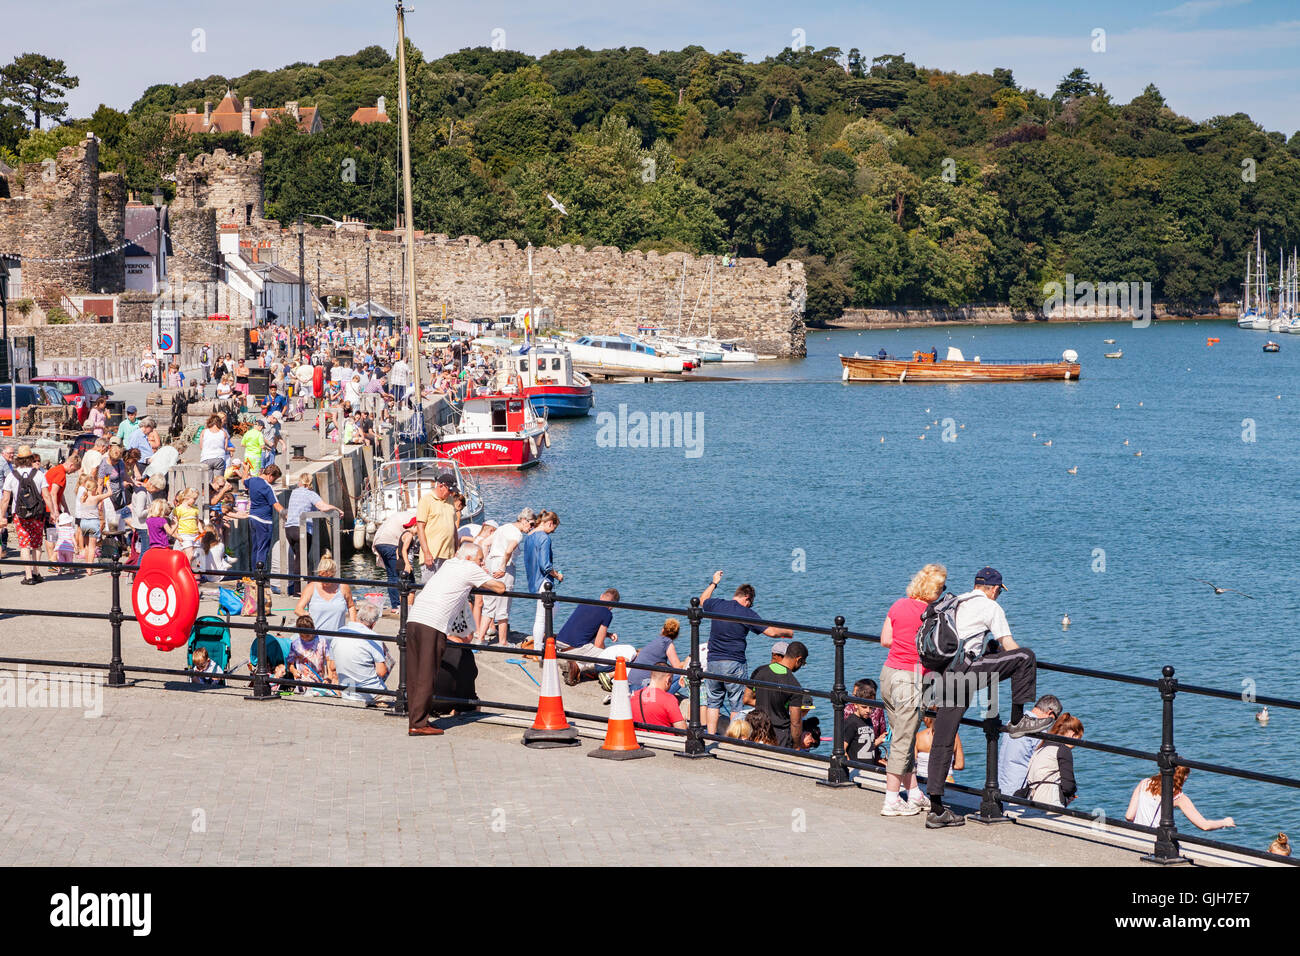 Conwy, North Wales, UK. 17th August 2016. Crowds on the medieval quay at Conwy enjoy the continuing warm weather. - Stock Image